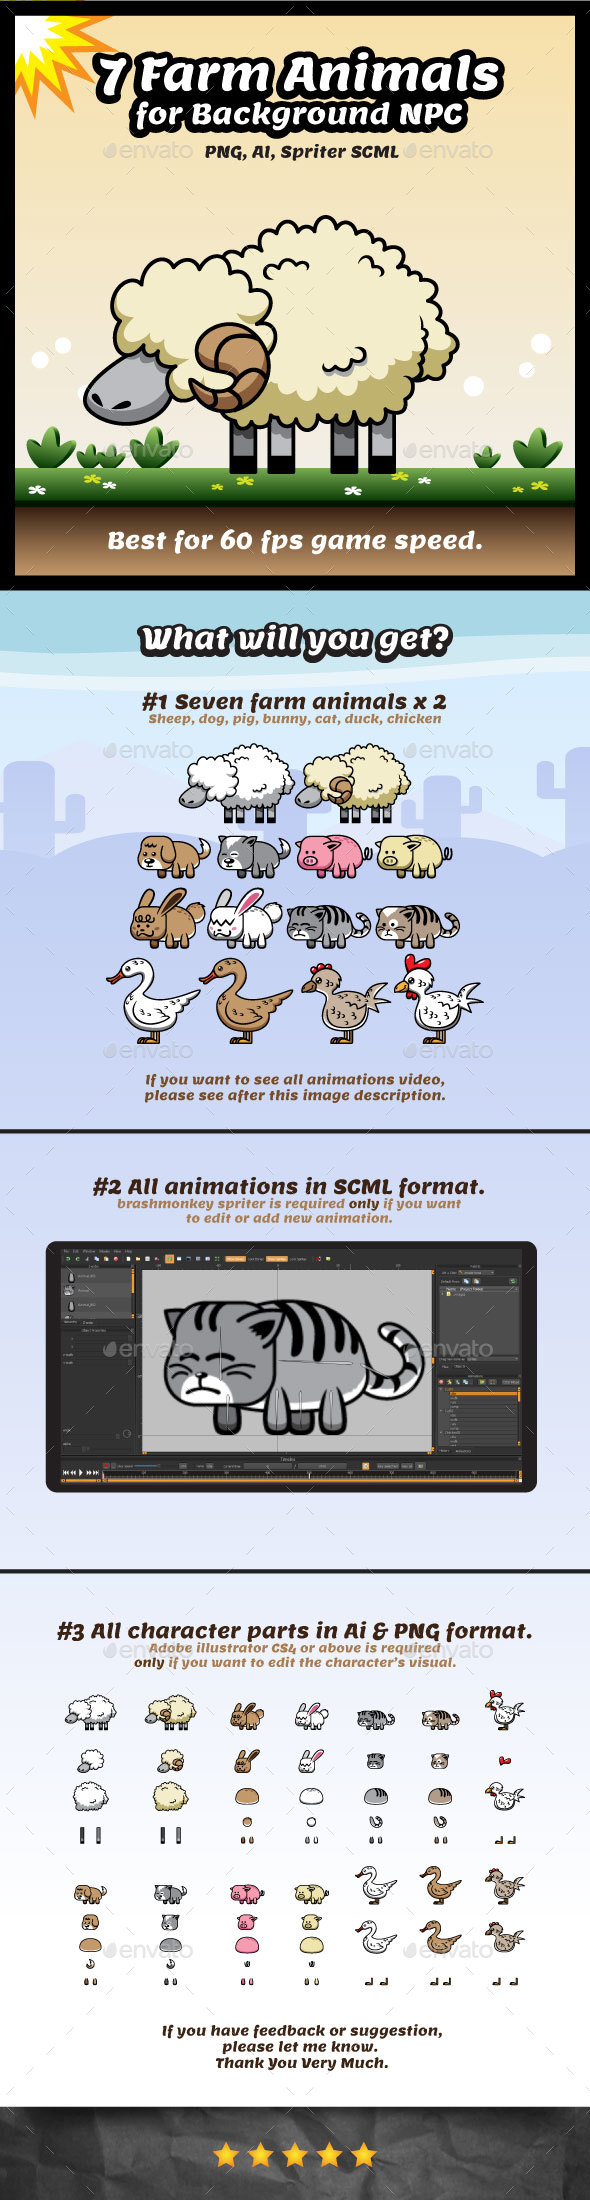 Farm Animal Game Character Sprites | NPC for Background - Sprites Game Assets